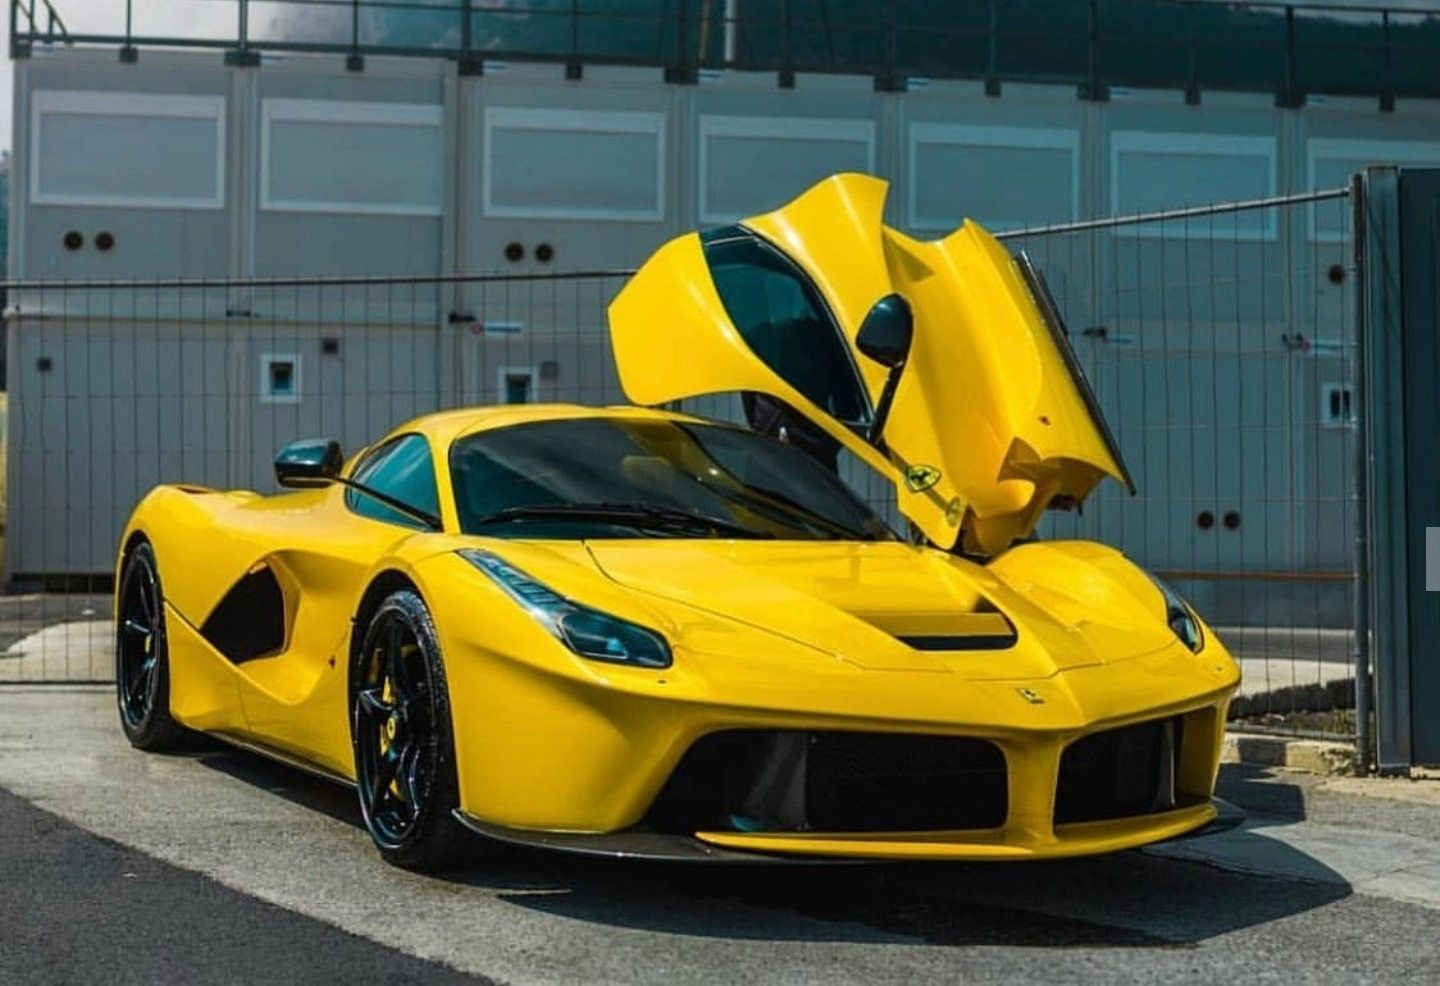 Pin by Phil Thomas on Luxury cars Exclusive cars, Cars